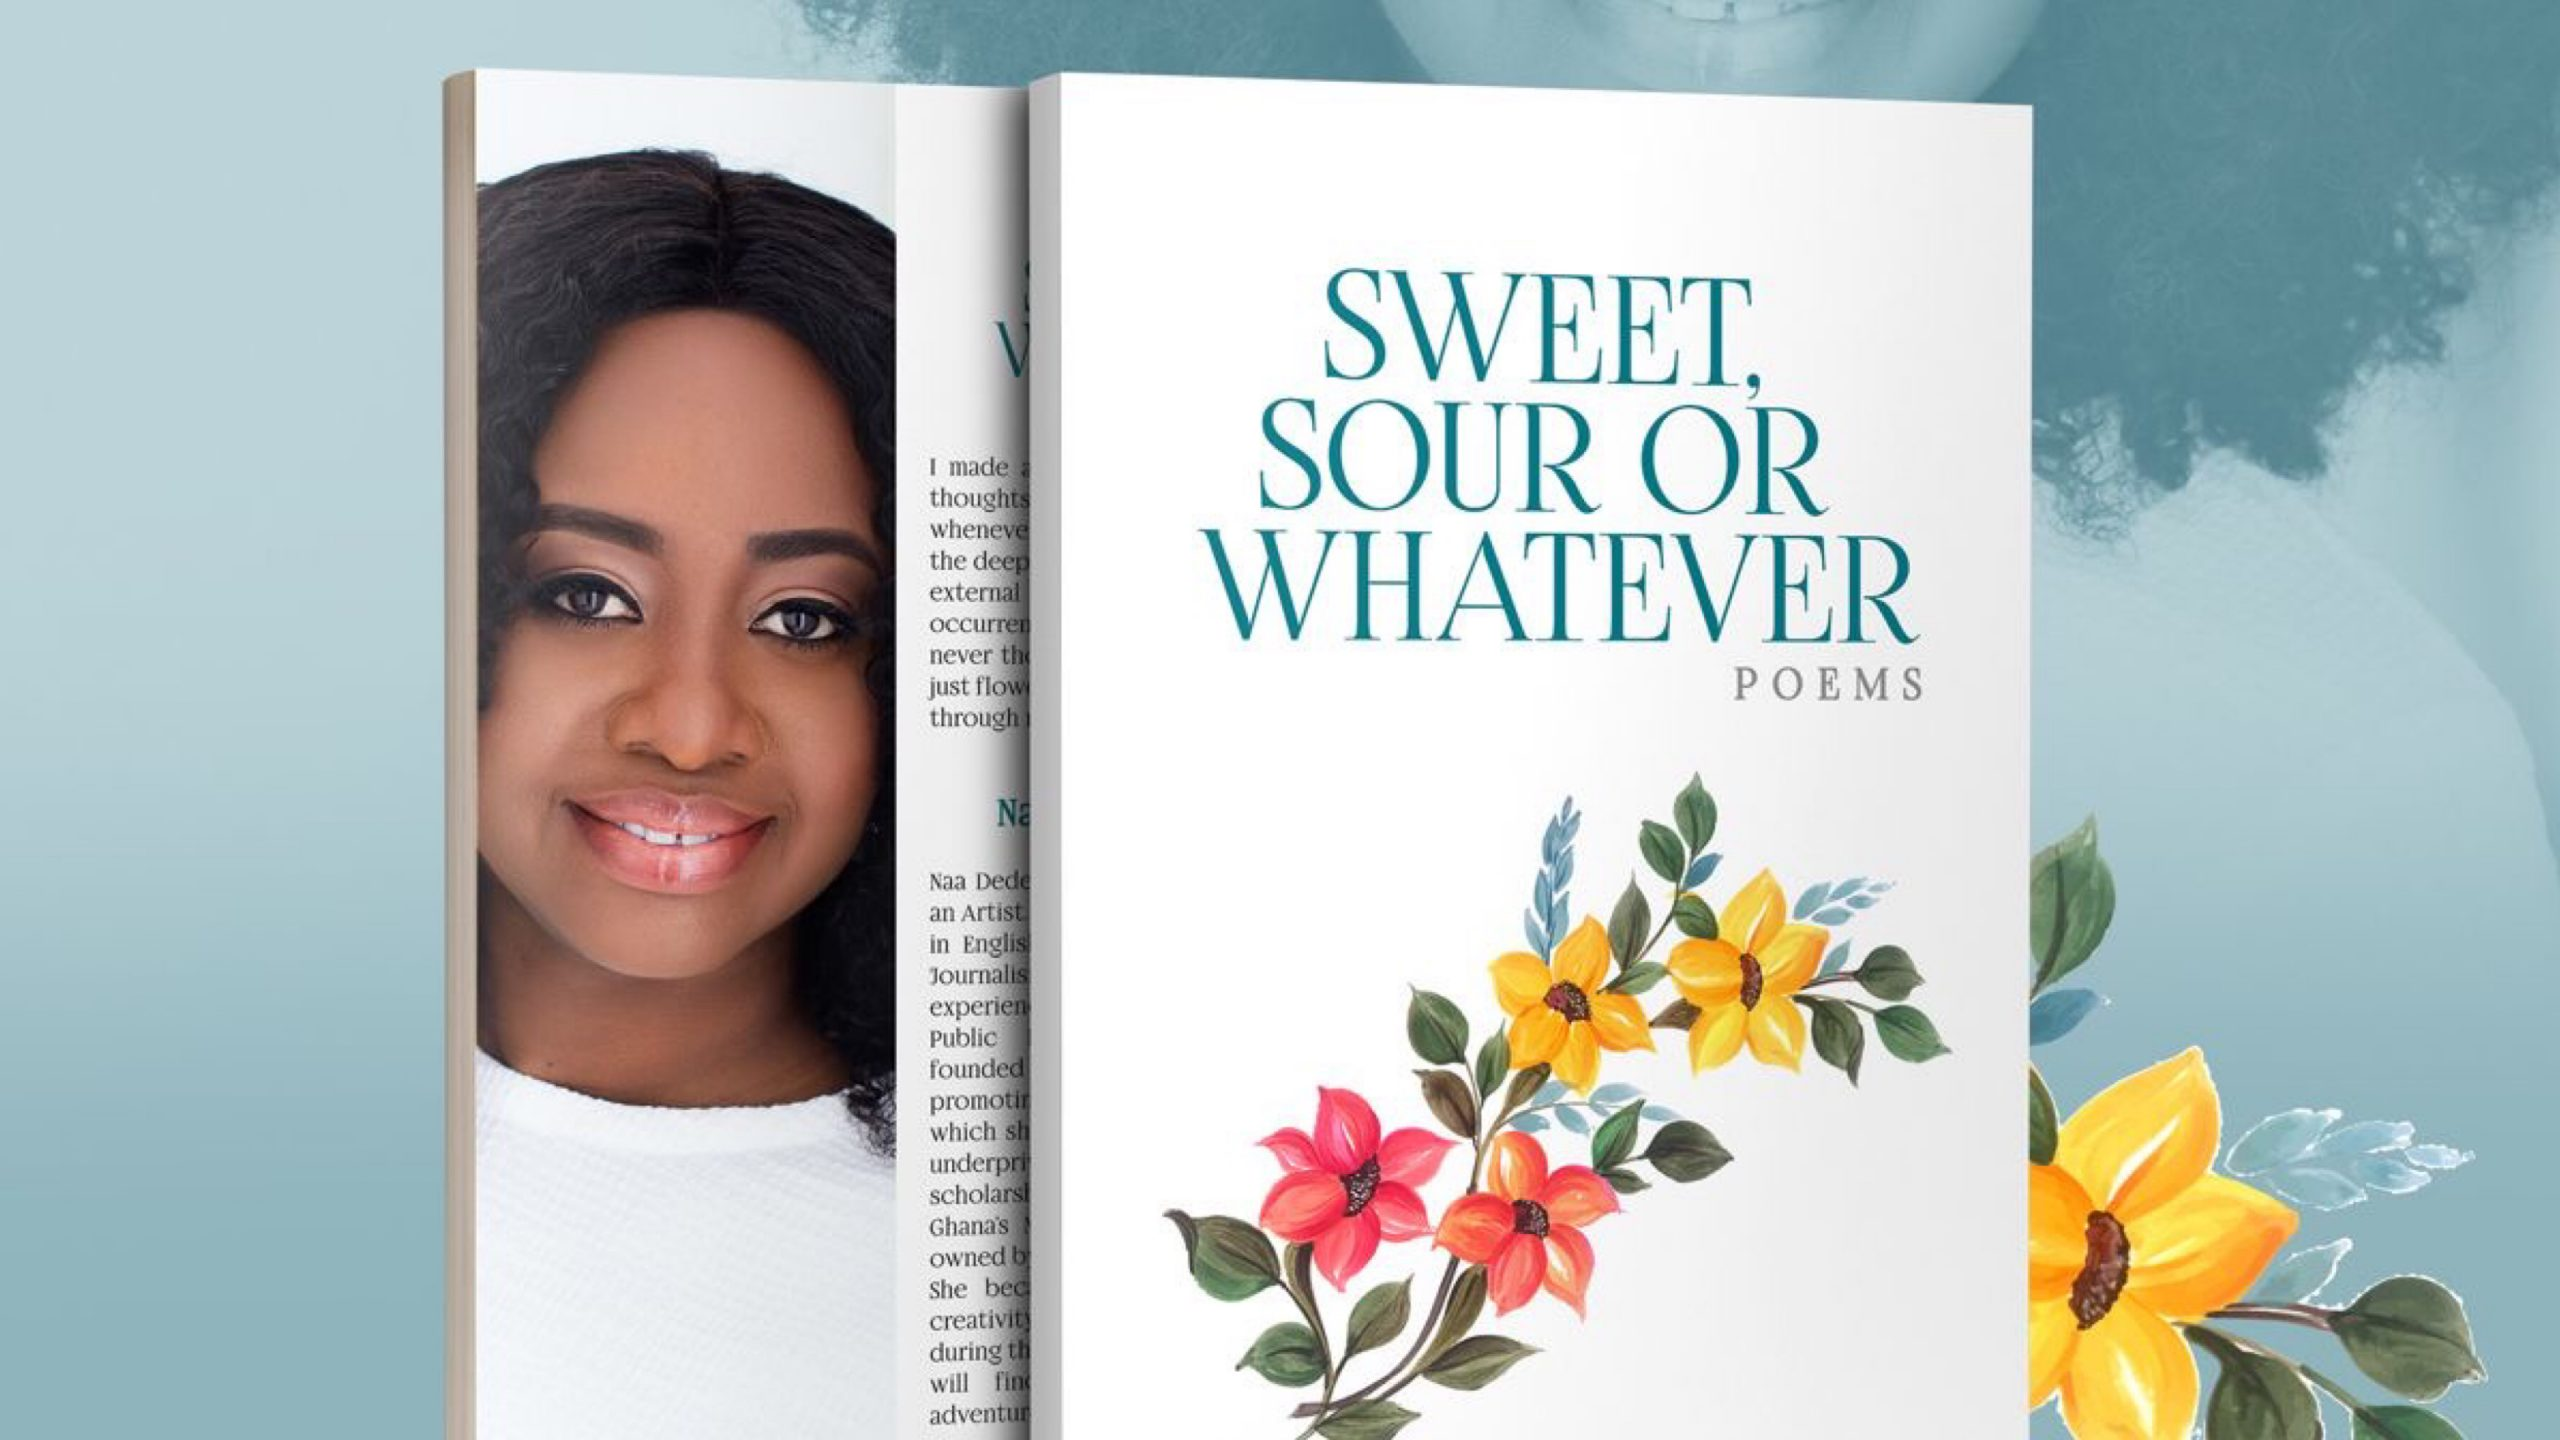 Naa Dedei Botchwey Makes Poetry Debut with 'Sweet, Sour or Whatever'